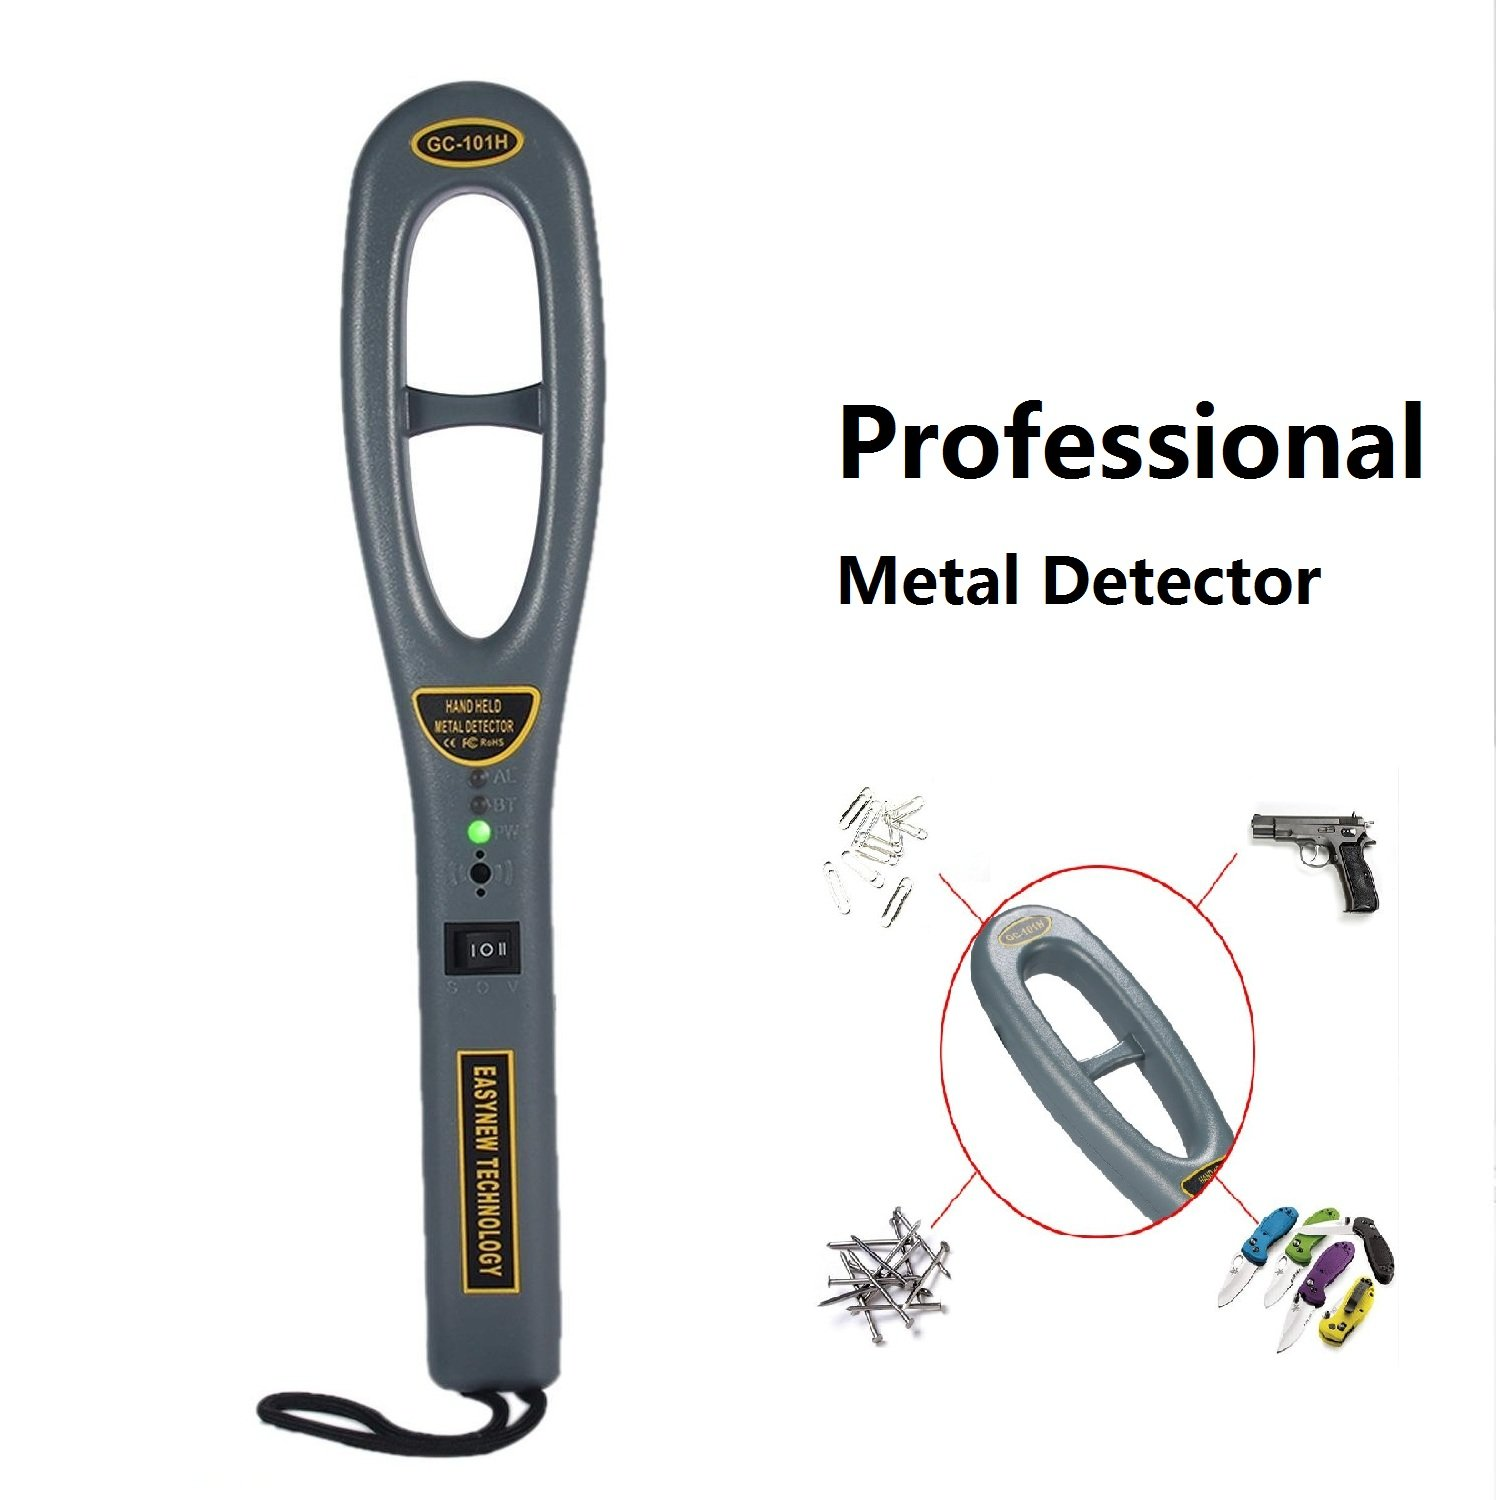 Teepao Professional Heavy Duty Metal Detector Hand Held Metal Detecting Probe Scanner Portable Treasure Finder Hunter Sensitivity Adjustable, with LED Indicator&Buzzer Vibration for Security Check